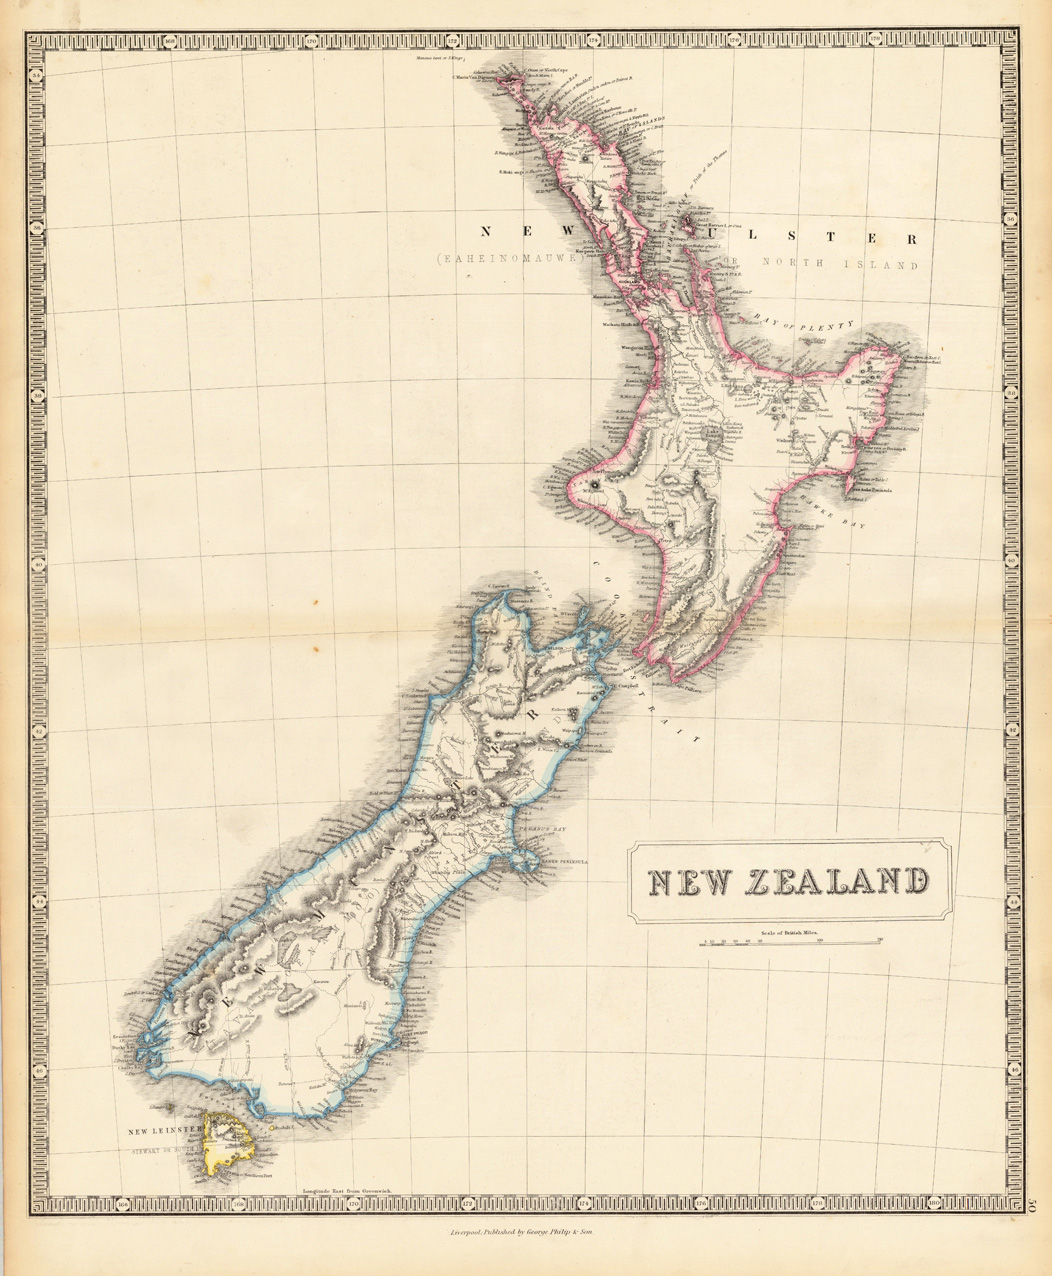 New Zealand Must See Map.A History Of South Island Self Determination Hosted In Nelson New